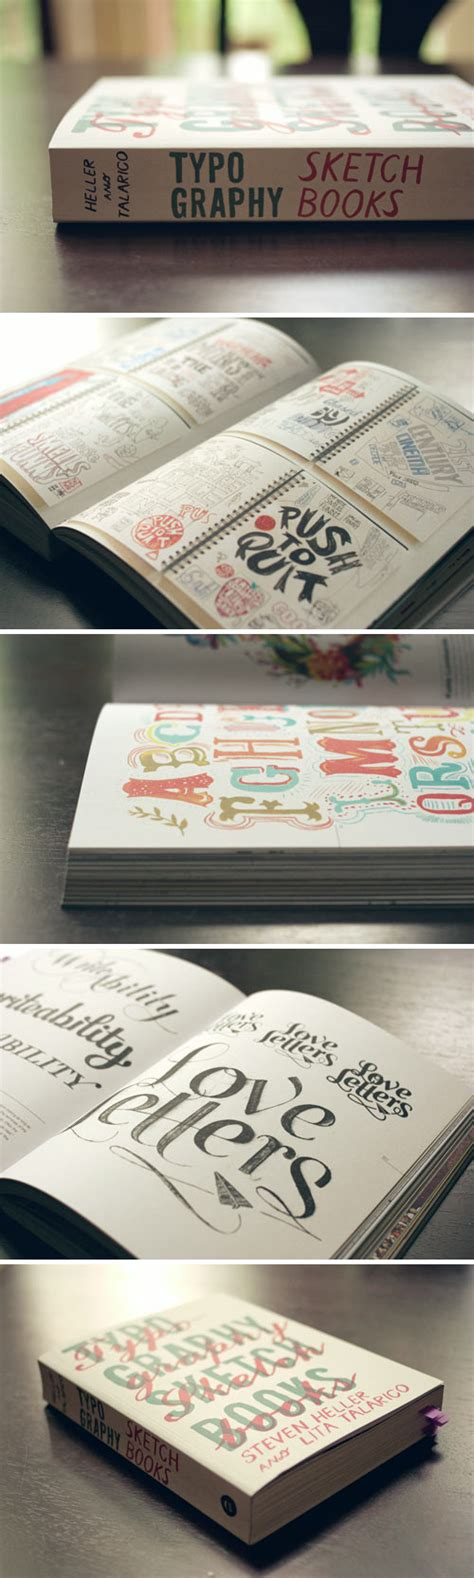 typography sketchbooks wit whistle